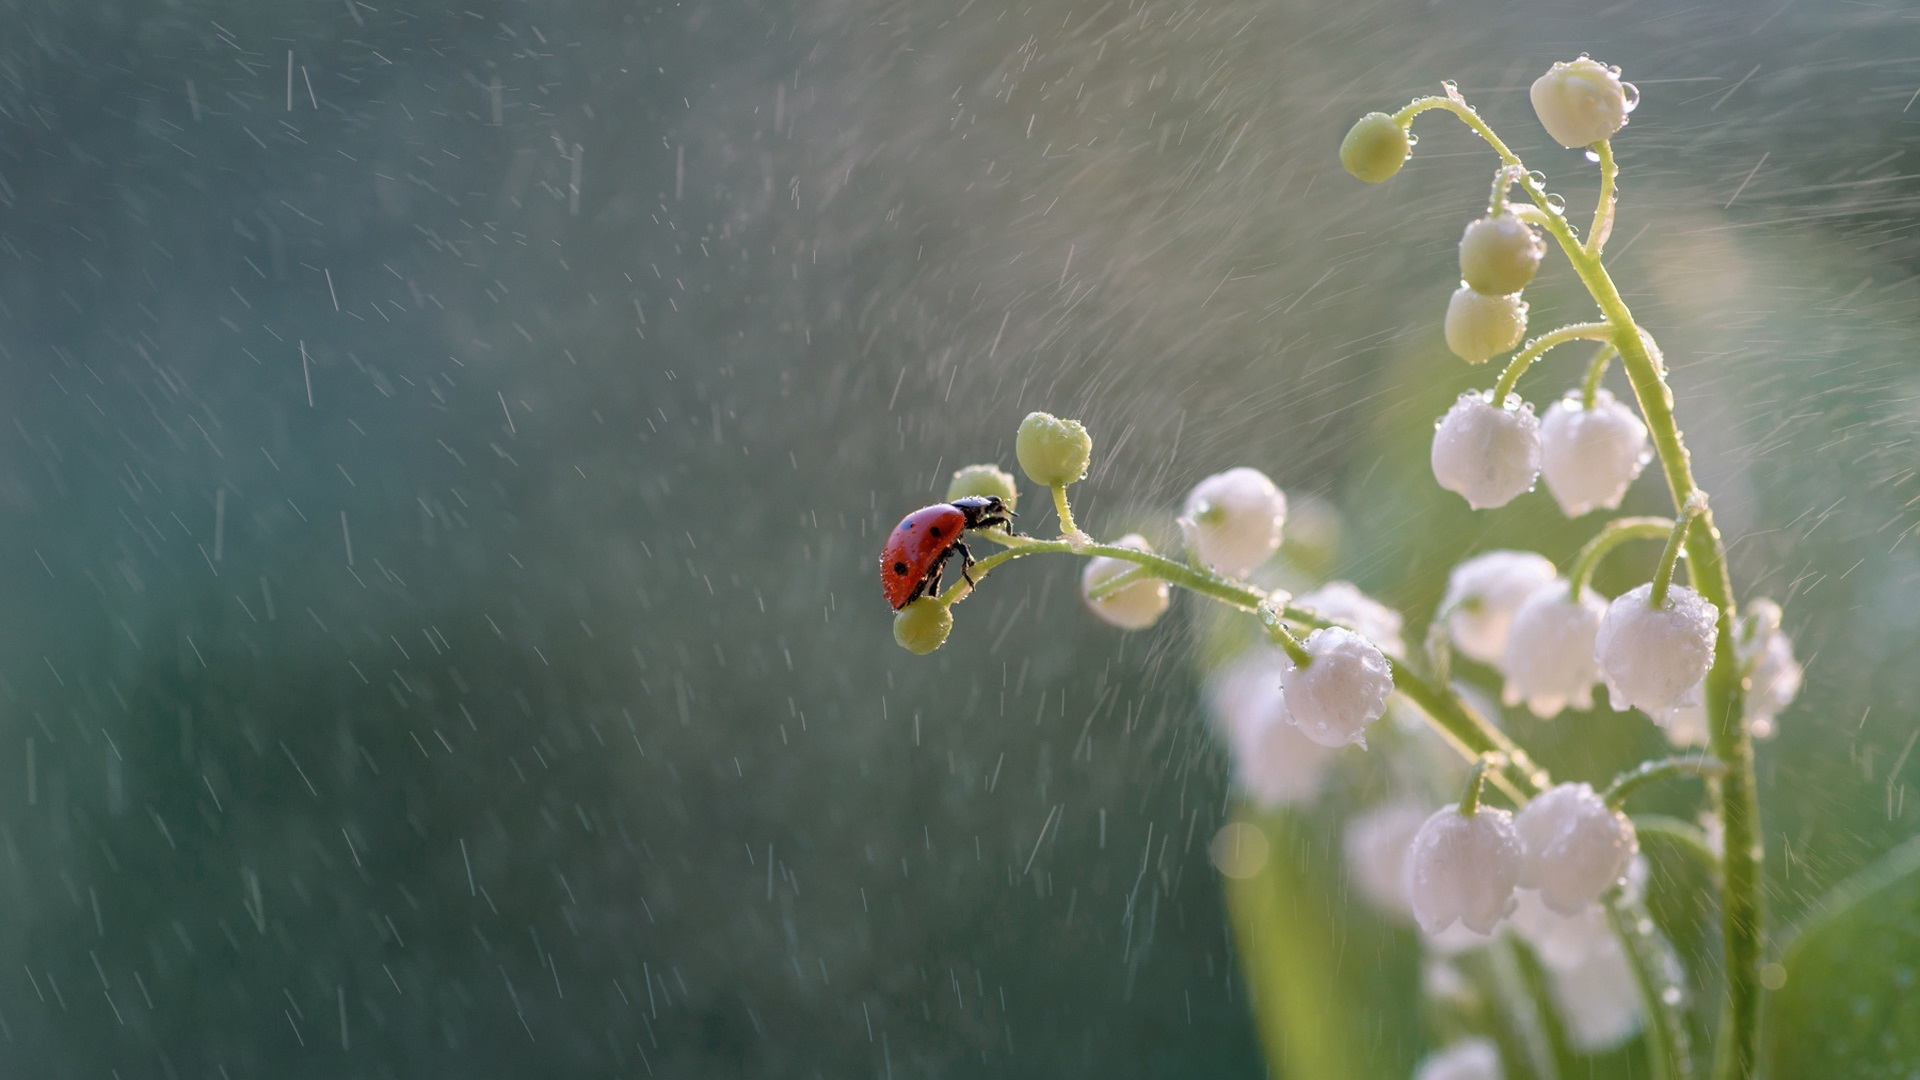 Wallpaper Lilies Of The Valley Ladybug Rain 1920x1200 Hd Picture